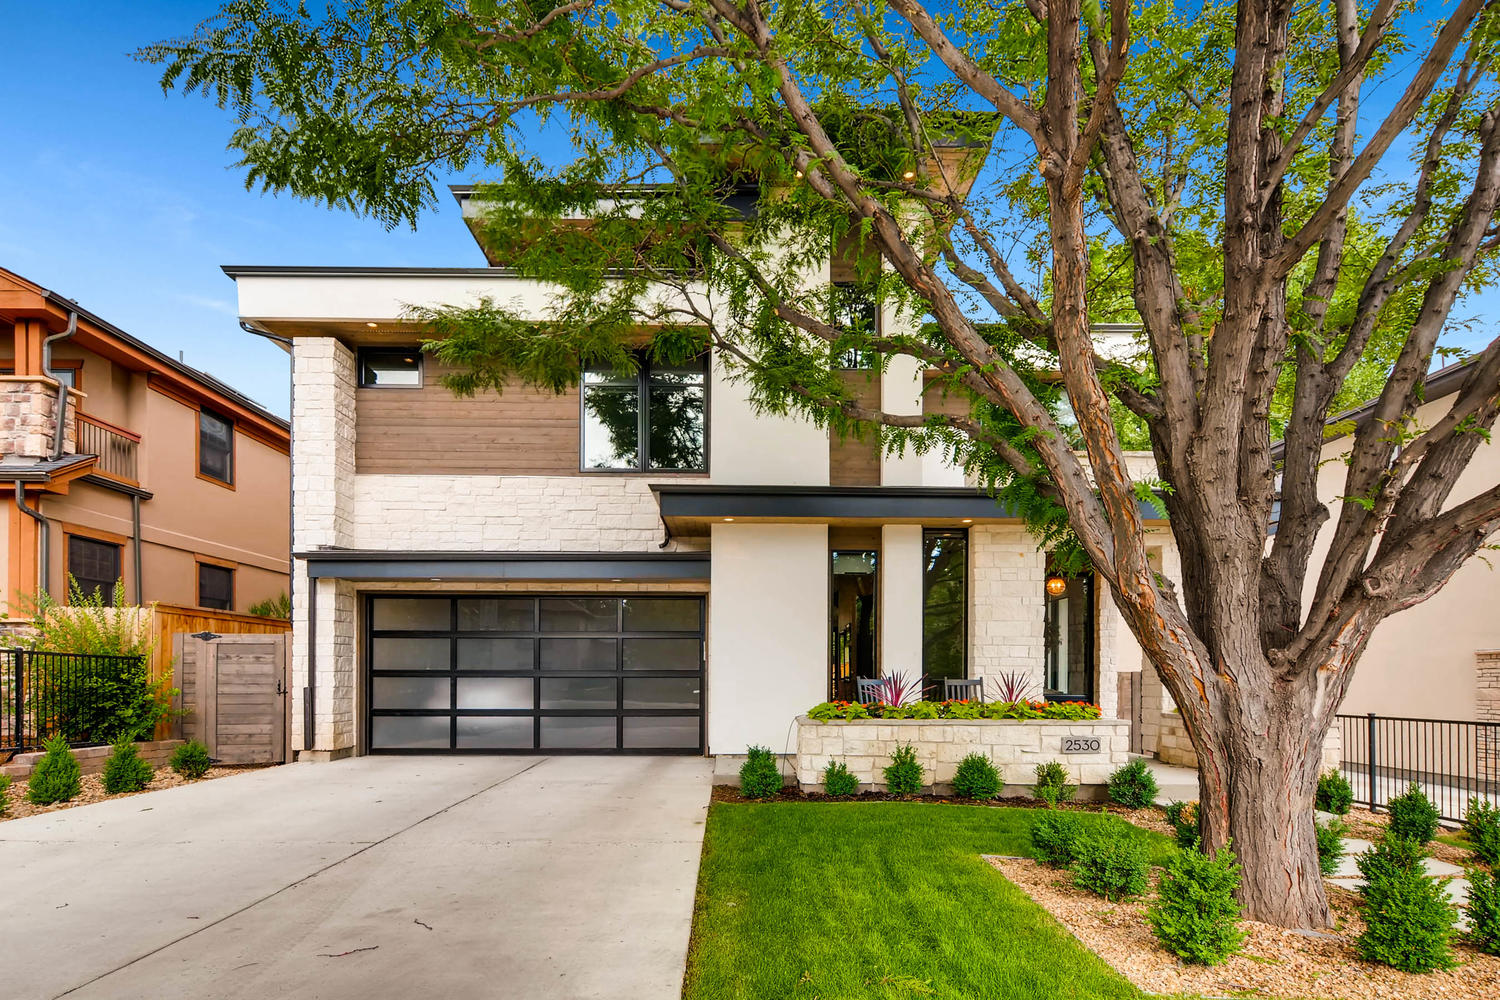 Modern Denver Custom Home with Flat Metal Roof and Wood Accents